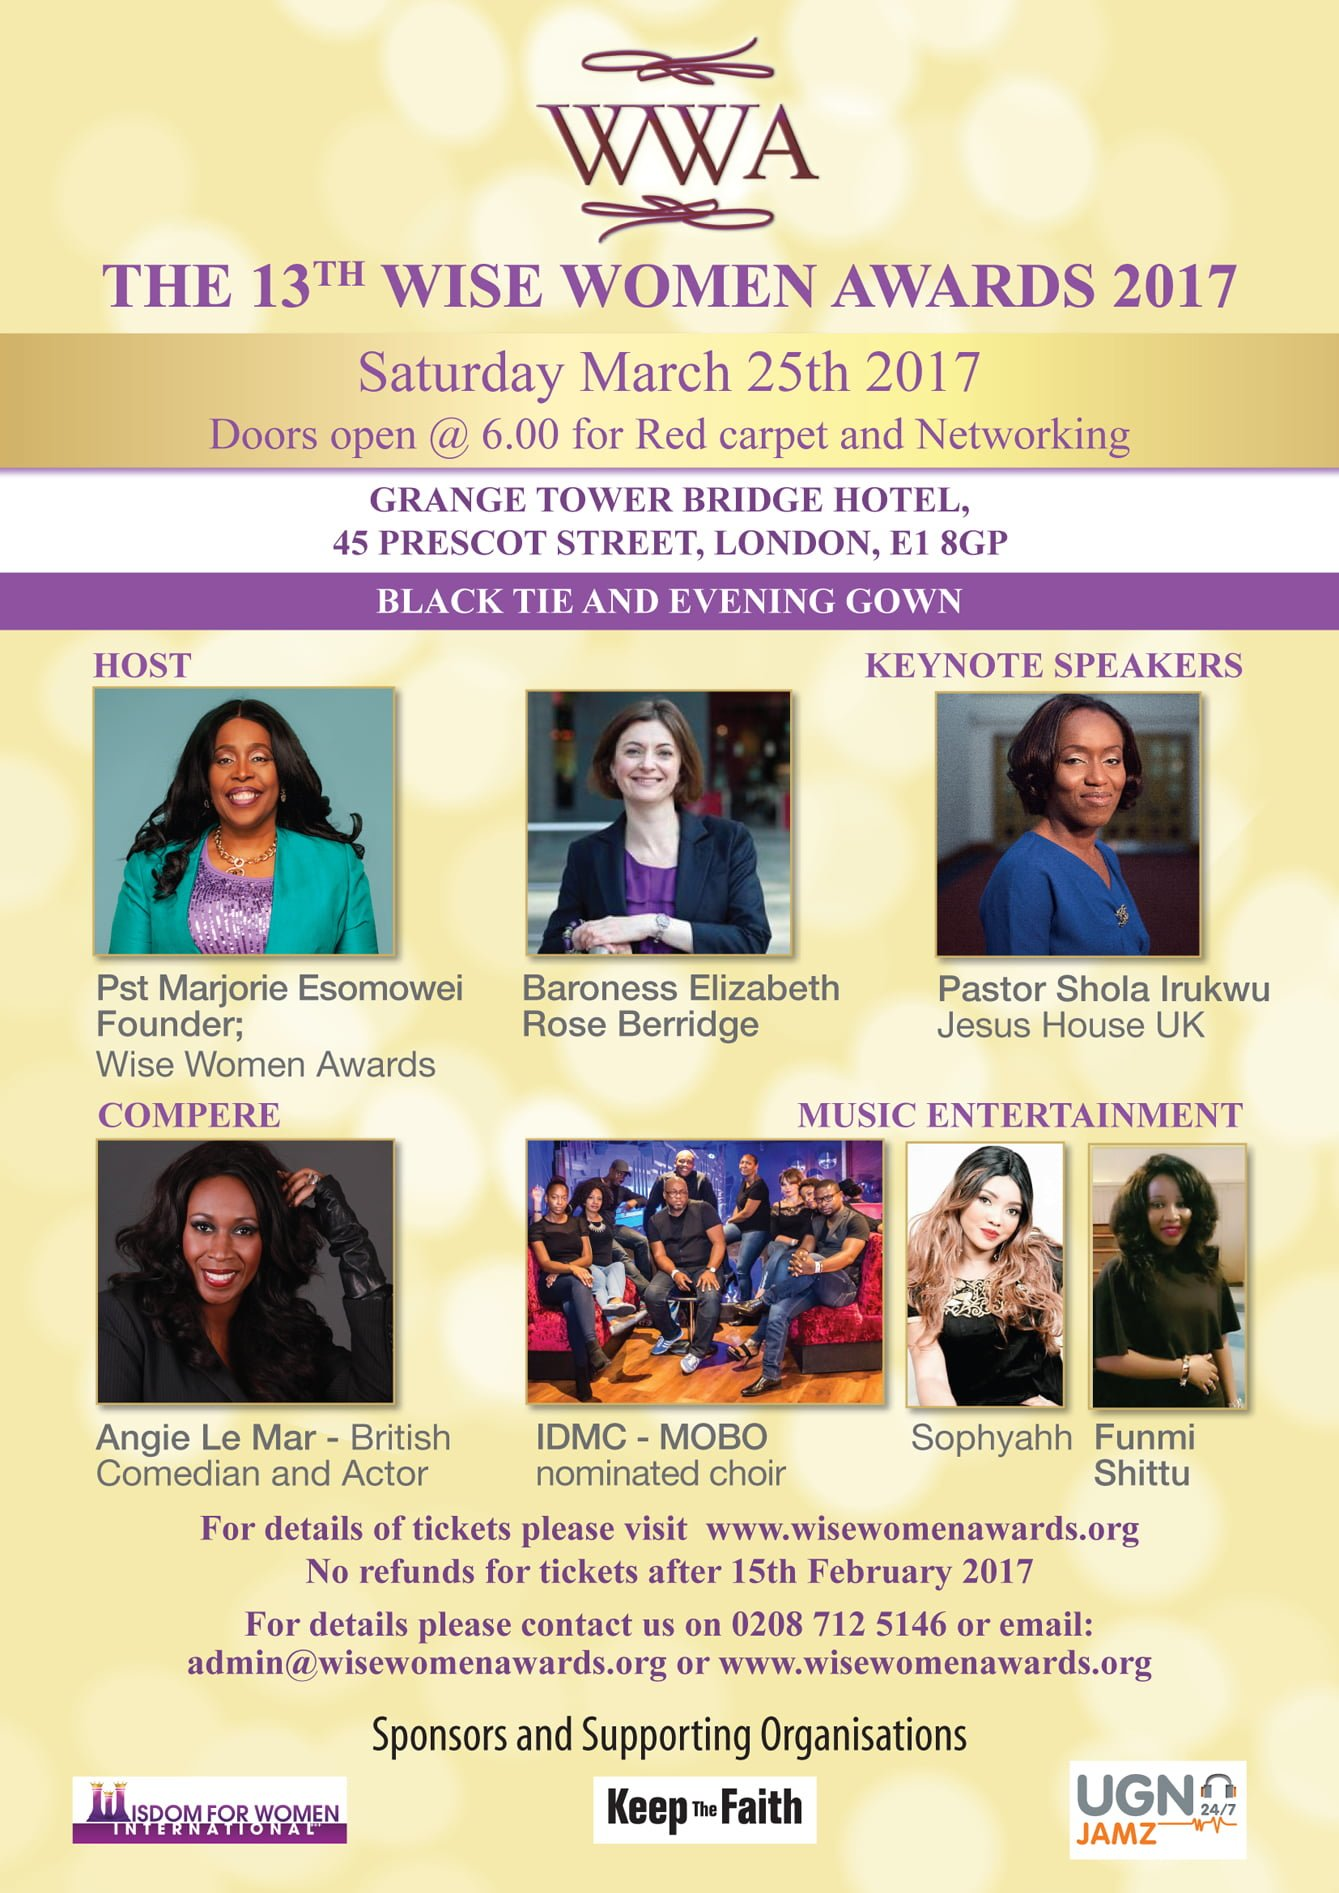 The 13th Wise Women Awards 2017